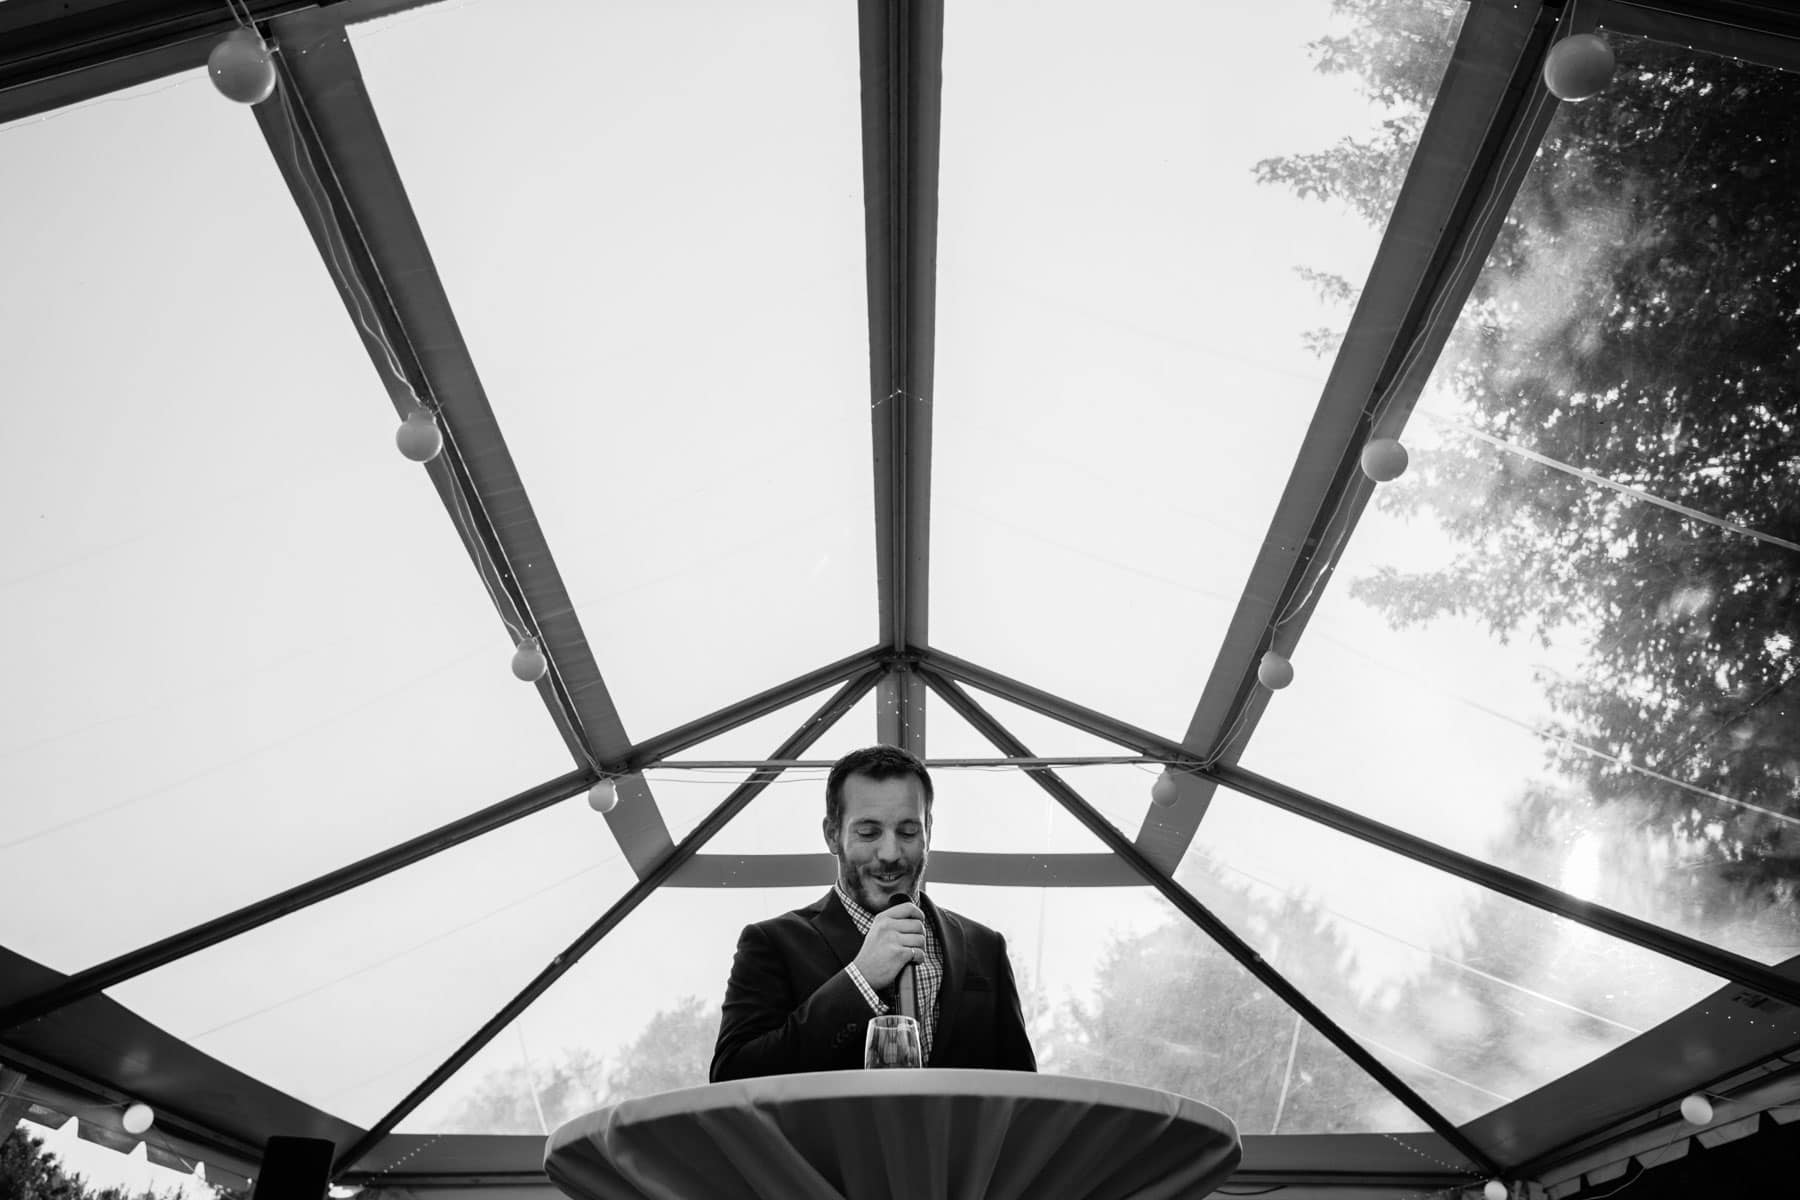 The best man delivers a wedding speech with a clear top white tent in background in these backyard wedding photos.